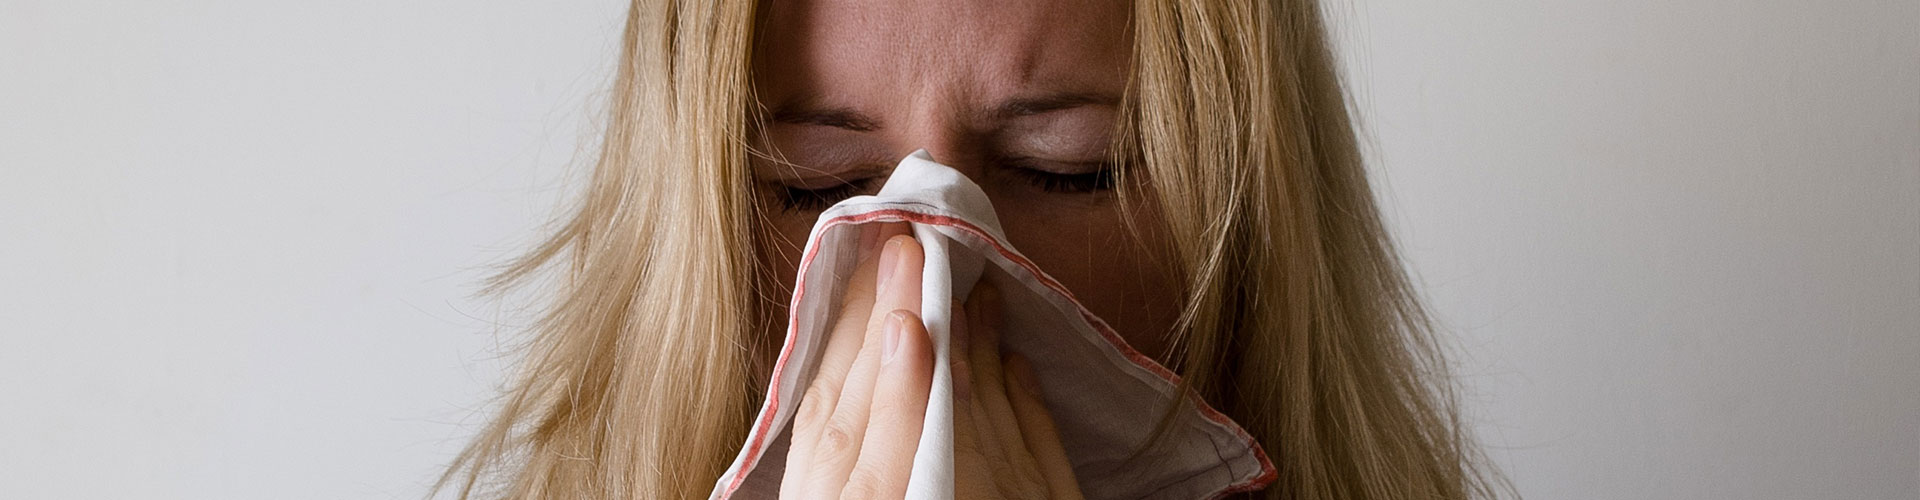 Keep Colds & Flu at Bay this Season with Your Sauna